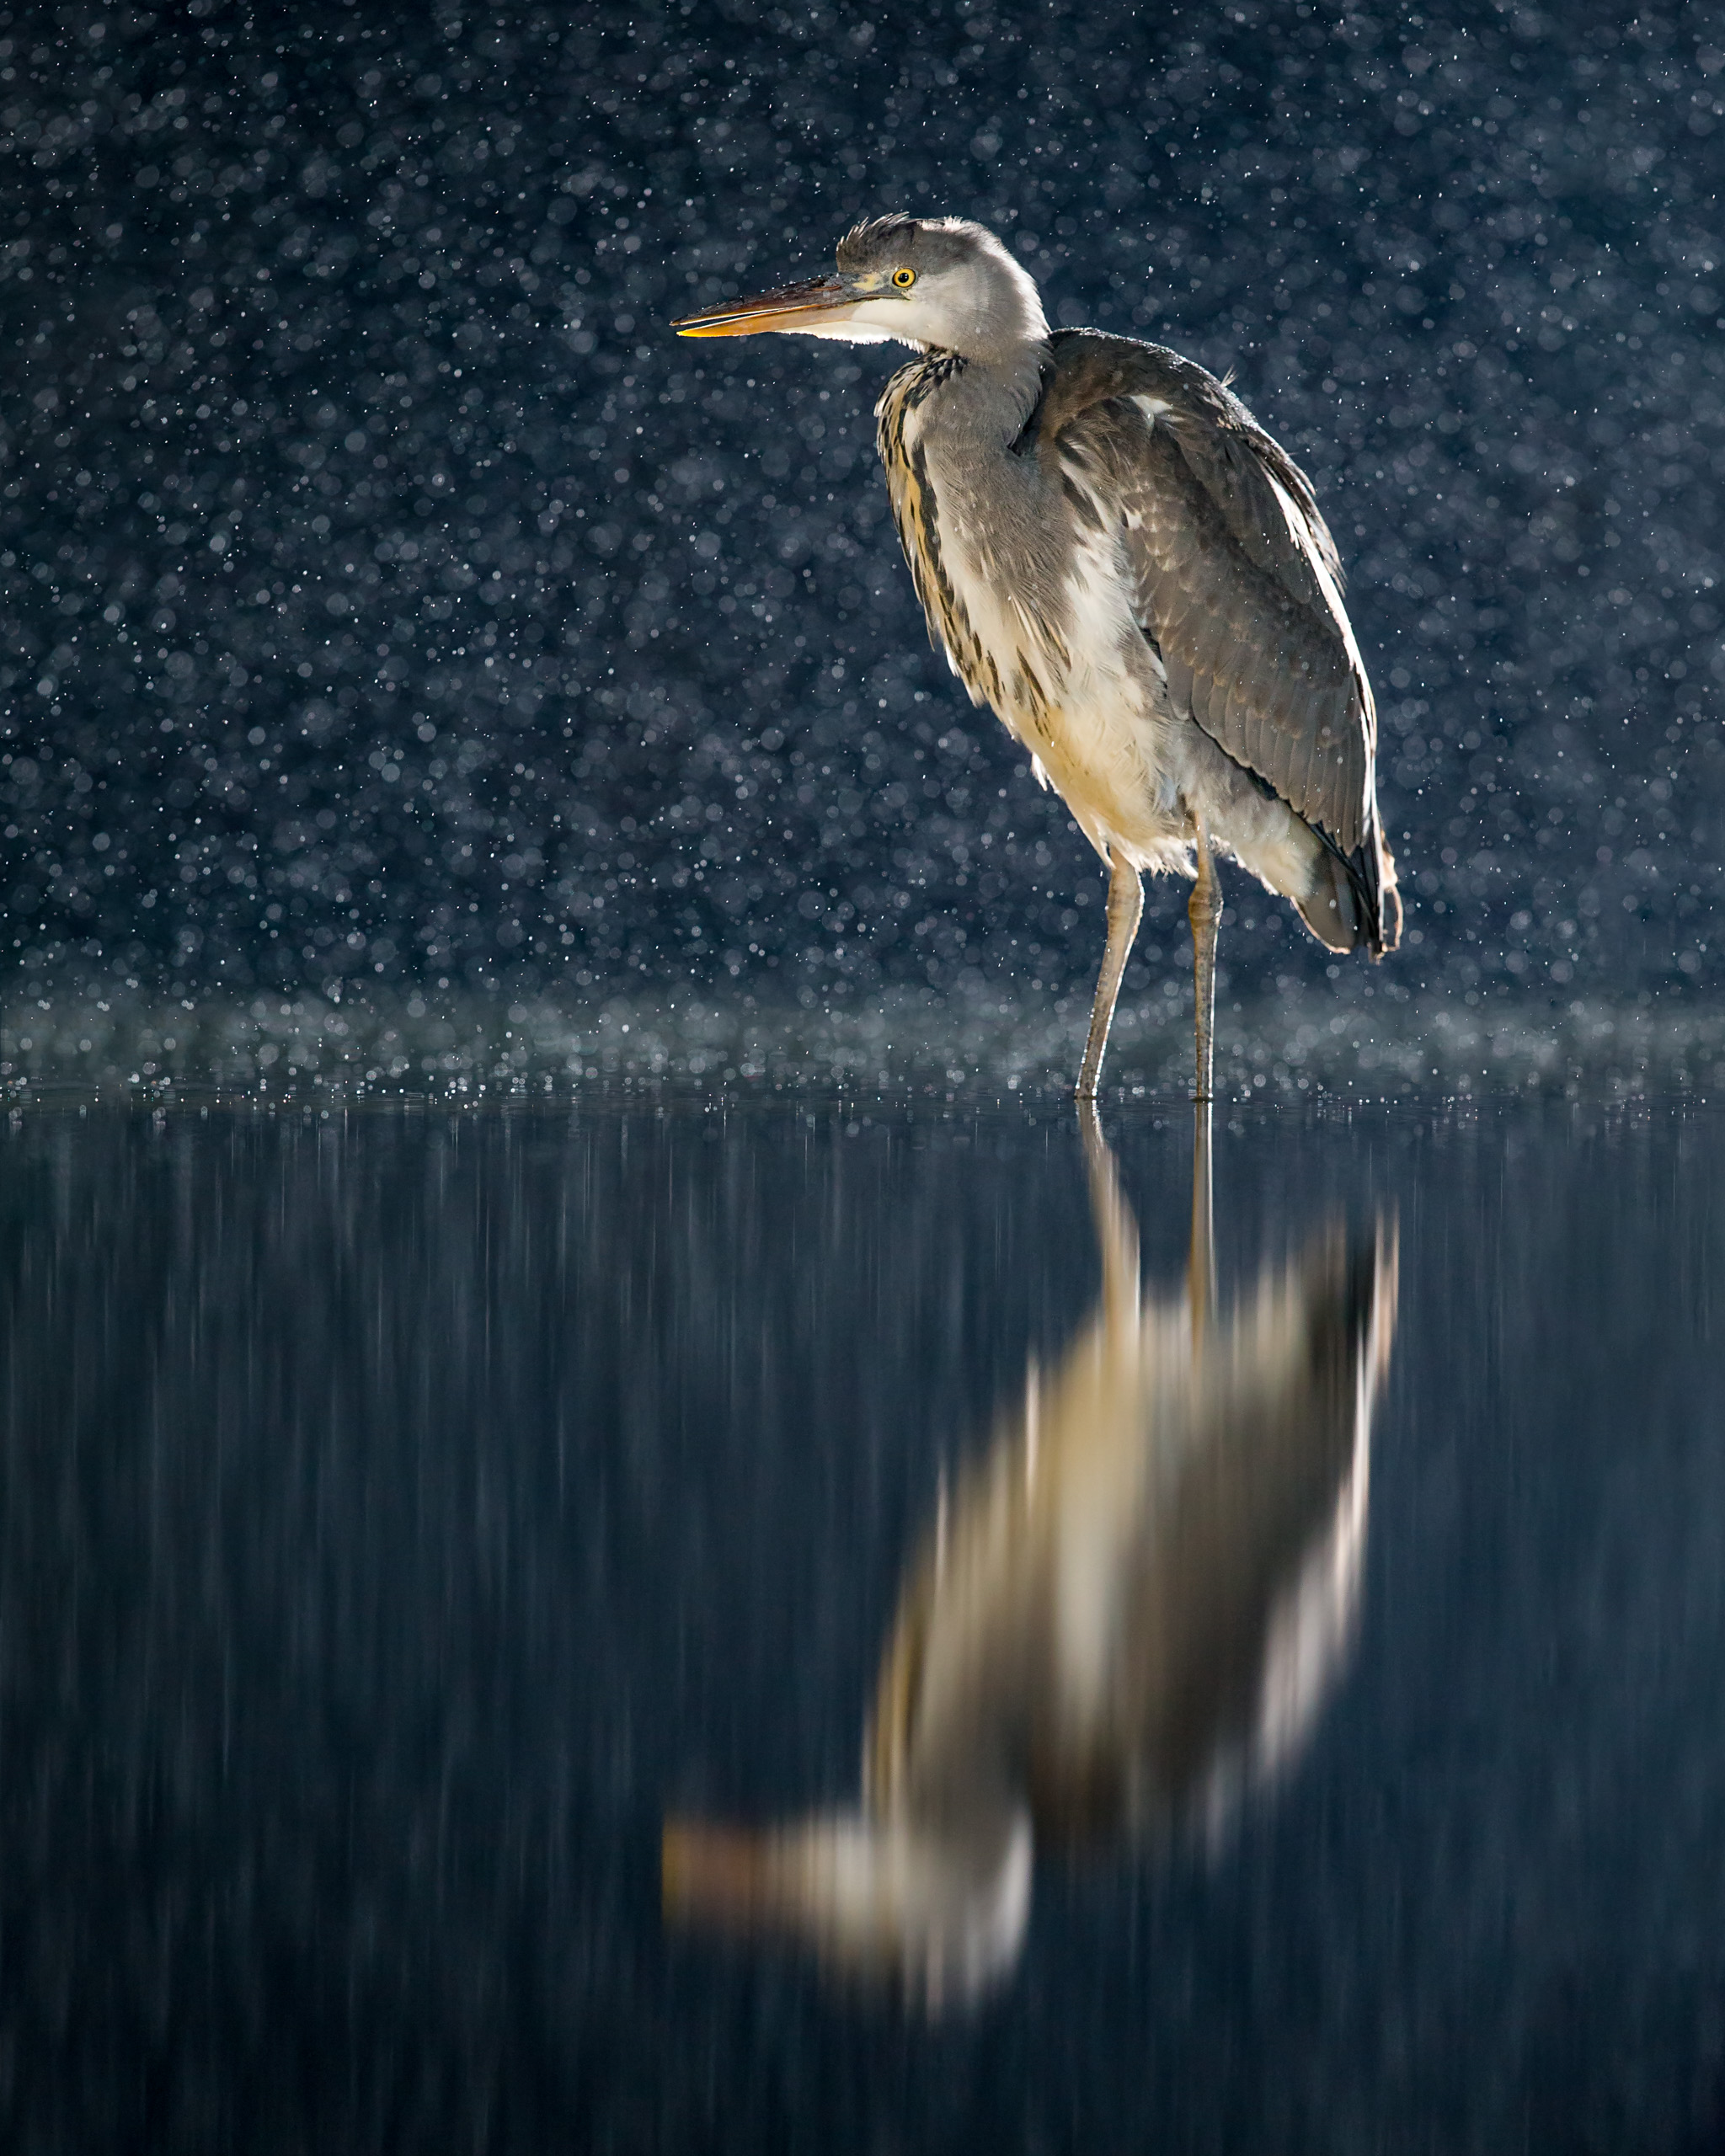 Image 04: Heron at night backlit with two speedlights, left and right high out of shot, and two front flashes to light the front of the bird. If you prefer a silhouette then you don't need the front flashes. Also taken at Wildlife Photography Hides' Pond Hide.